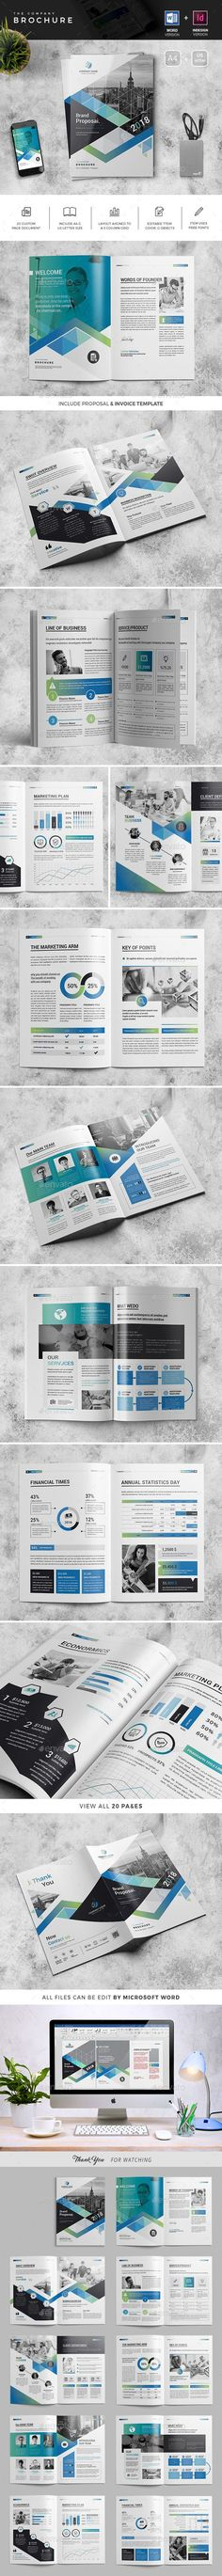 The Brochure — InDesign INDD #business #market • Available here ➝ https://graphicriver.net/item/the-brochure/20946919?ref=pxcr